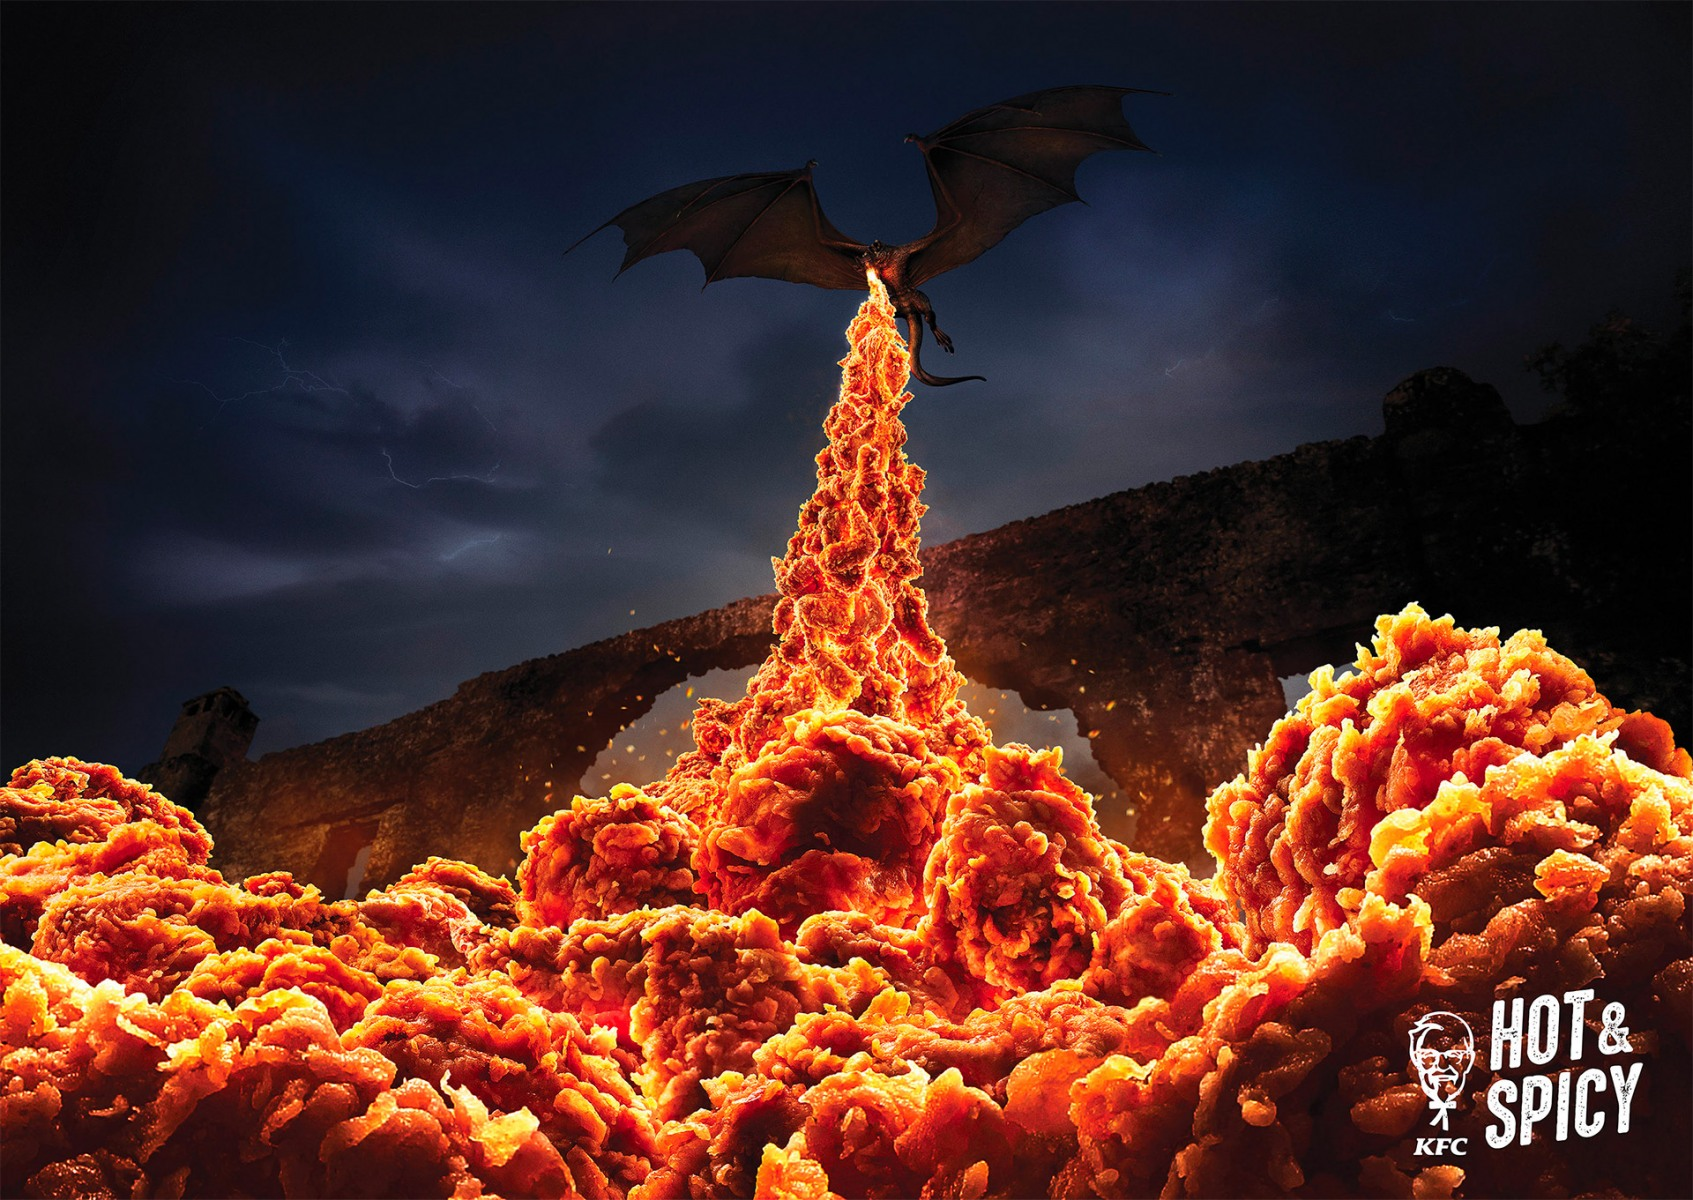 KFC-Hot-Spicy-Campaign-by-Ogilvy-Daily-design-inspiration-for-creatives-Inspiration-Grid-13